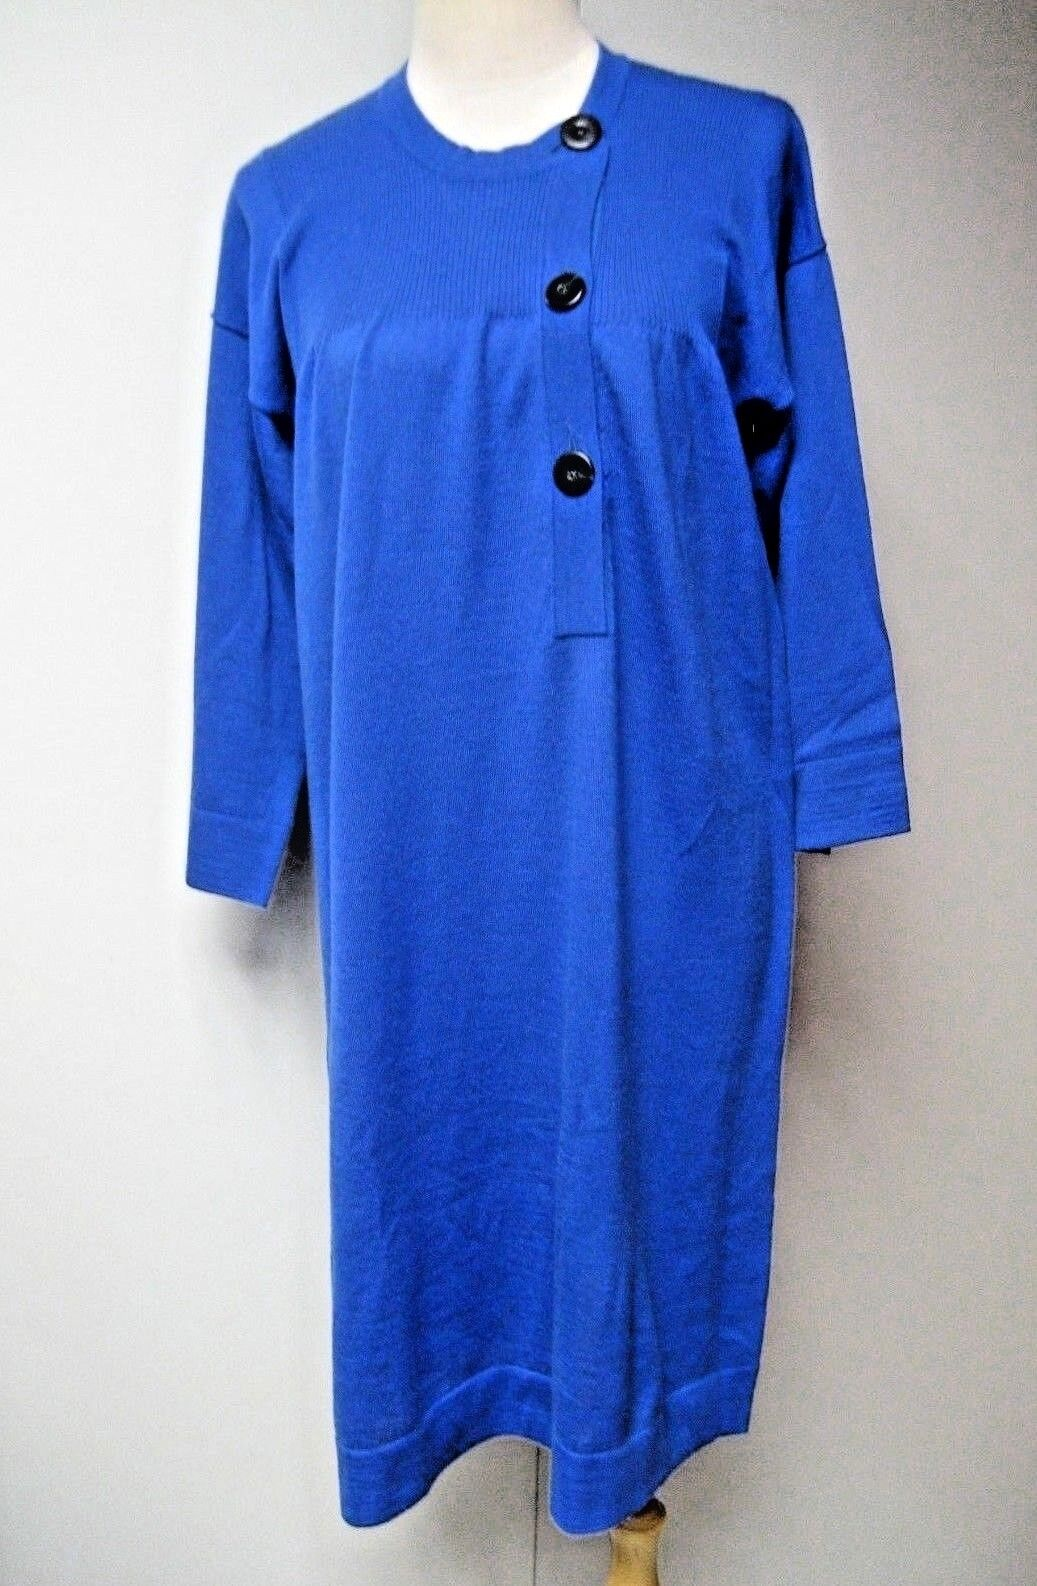 Cacharel Merino Wool sweater dress in bluee, size 2, relax fit,  New with defect